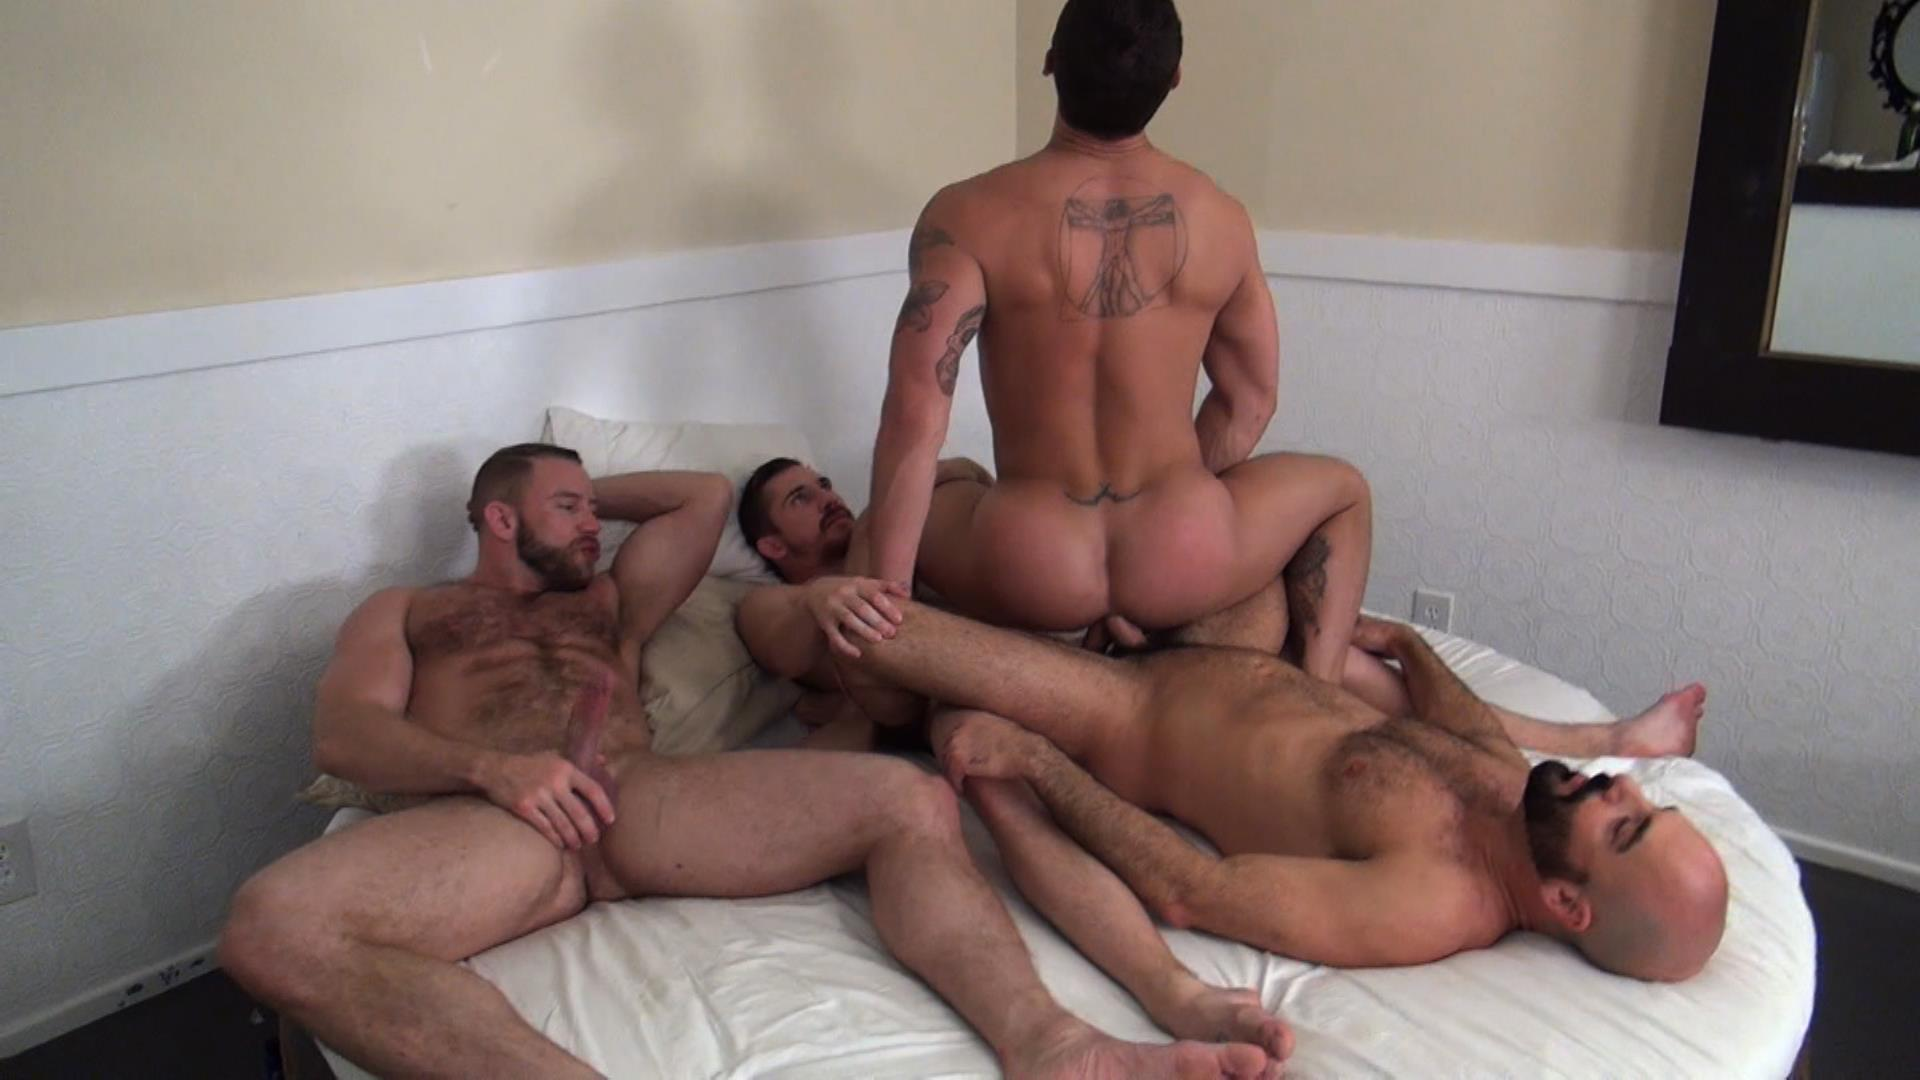 Raw Fuck Club Dayton OConnor Tate Ryder Shay Michaels Adam Russo Bareback Breeding Amateur Gay Porn 1 Tate Ryder Gets Three Hairy Muscle Daddy Bareback Cocks